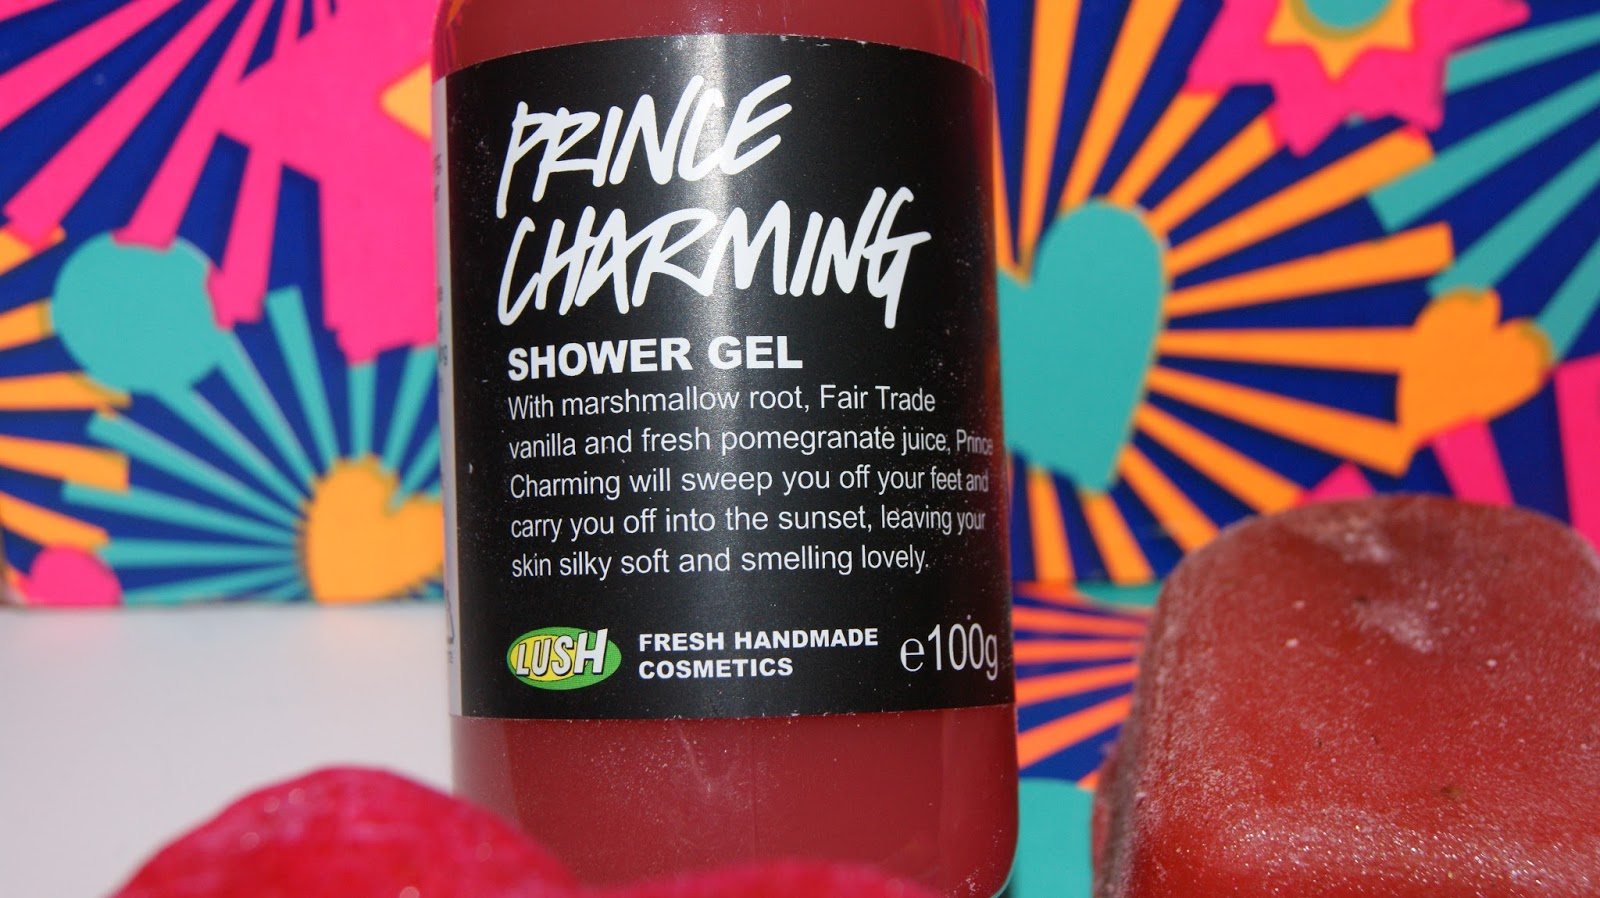 Lush Prince Charming Shower Gel Bottle